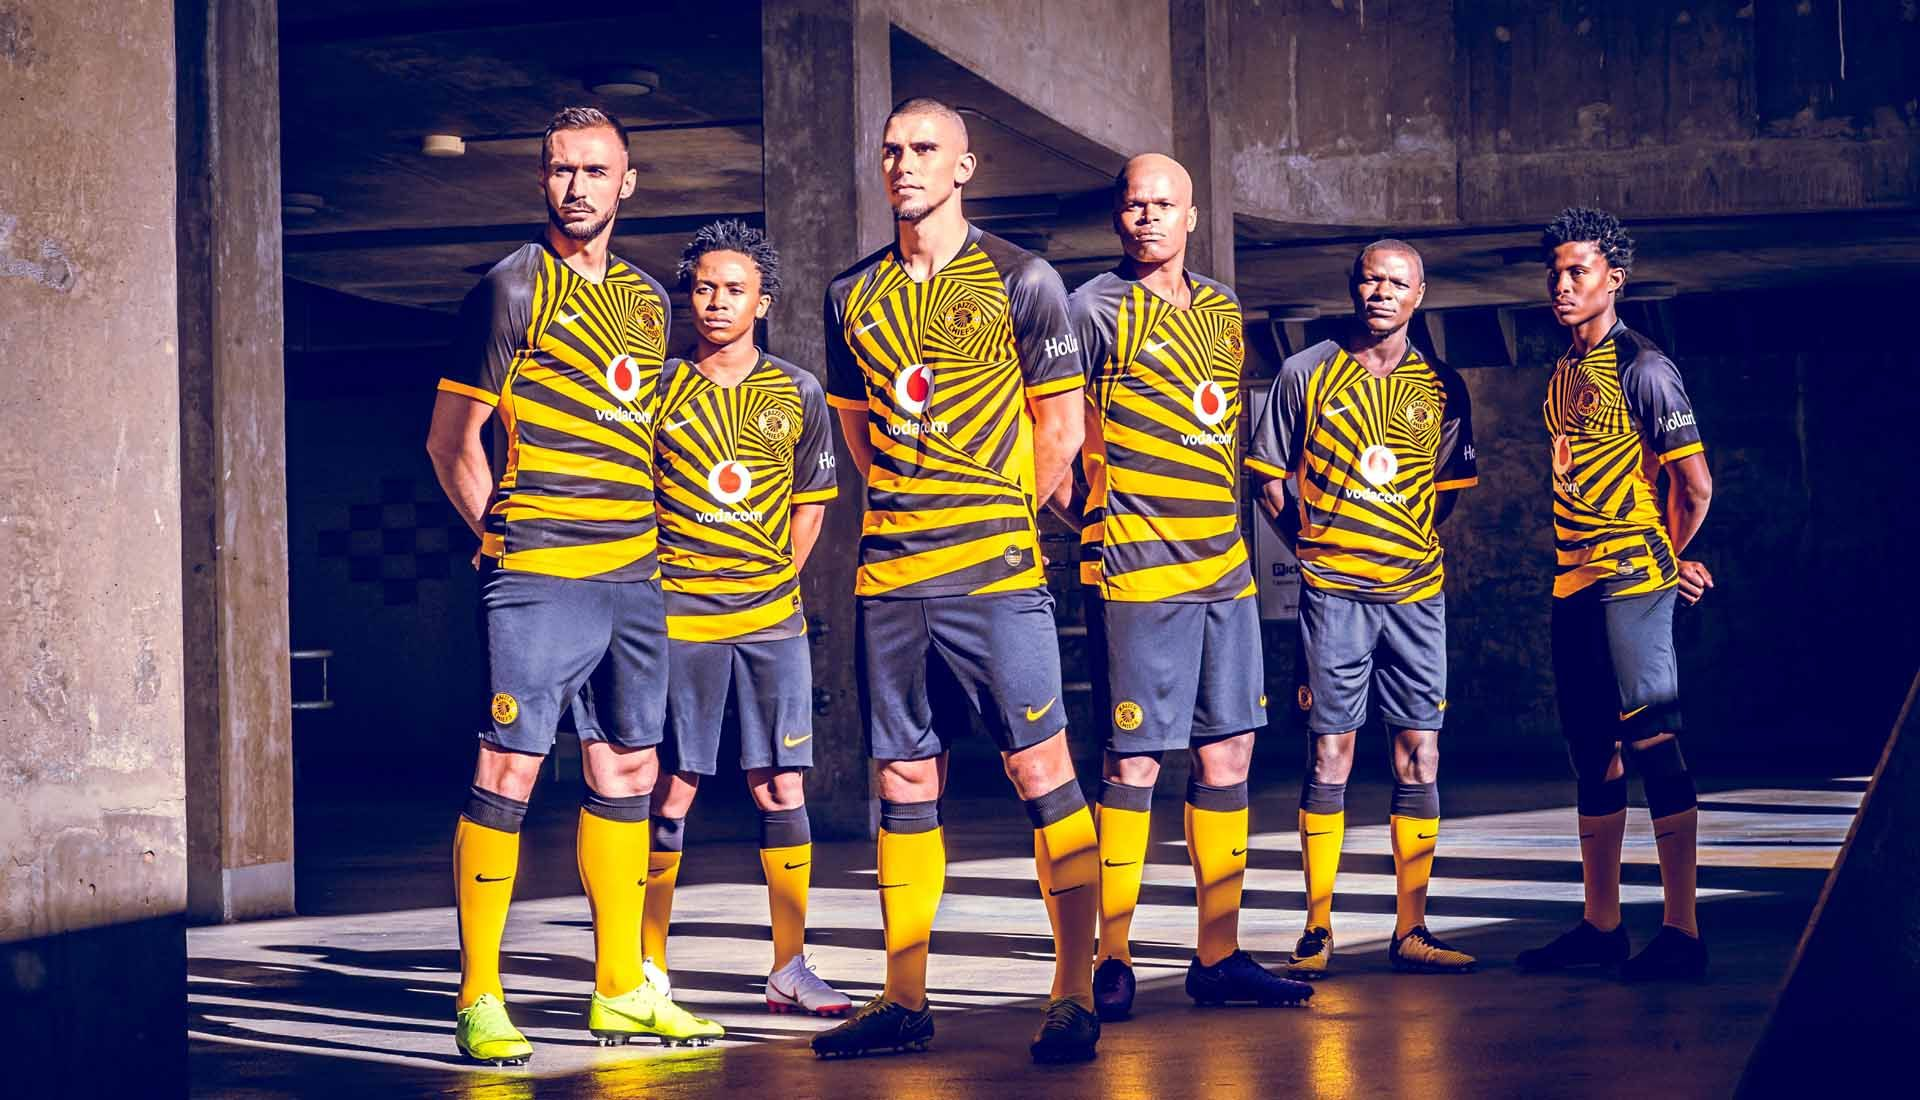 Pin On Kaizer Chiefs